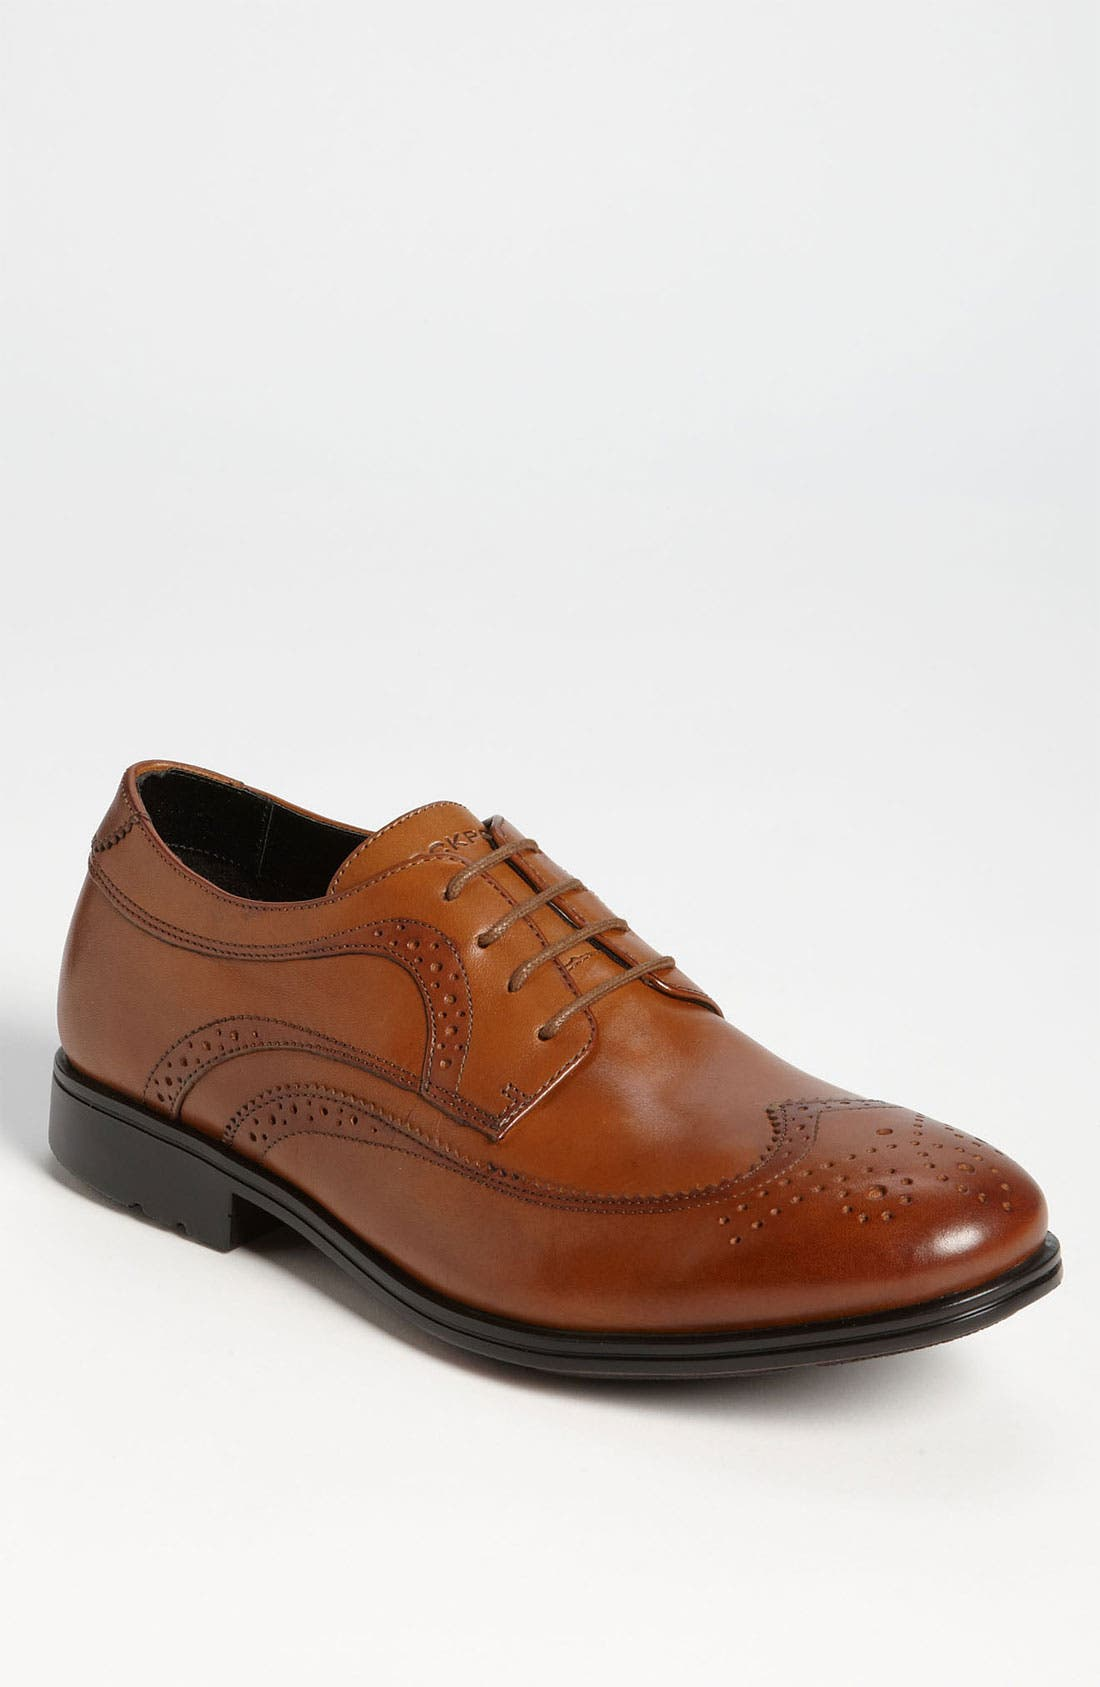 Main Image - Rockport 'Fairwood' Wingtip